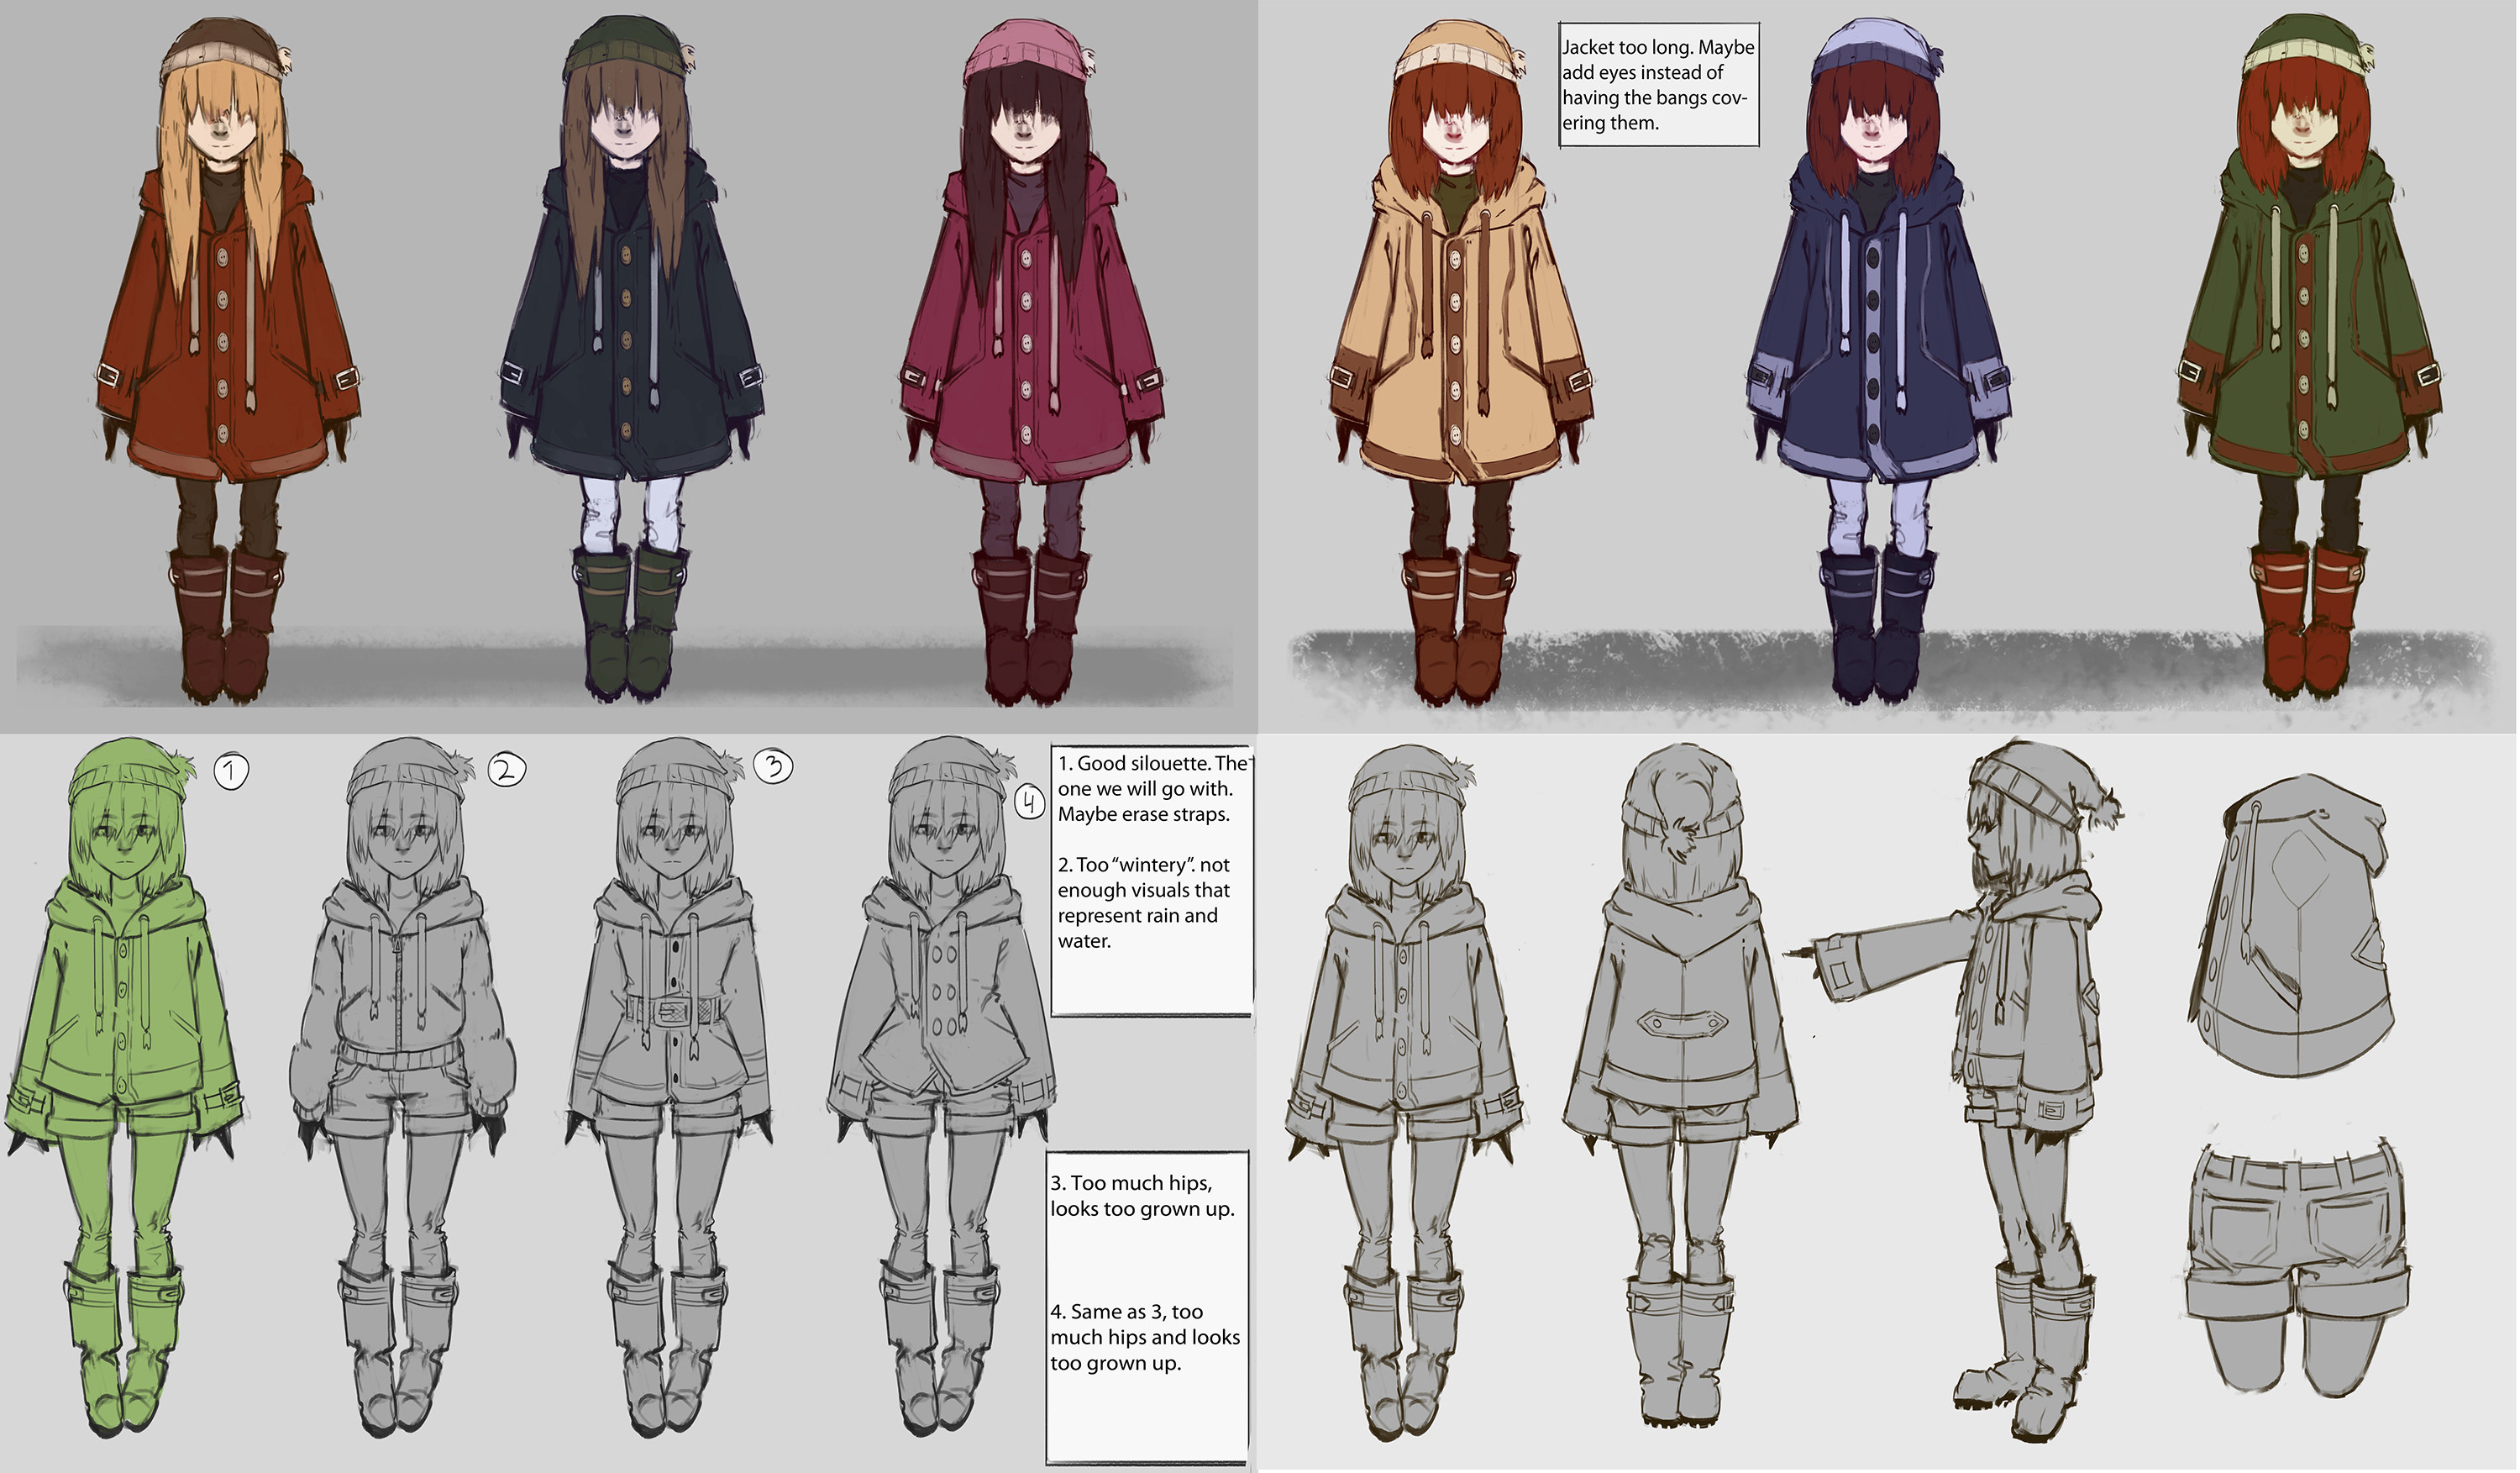 Earlier concepts for the character. We first wanted to give the character a sense of anonymity and cover her eyes, as well give her a raincoat to fit the theme. The coat was later changed to make it easier to rigg and animate.